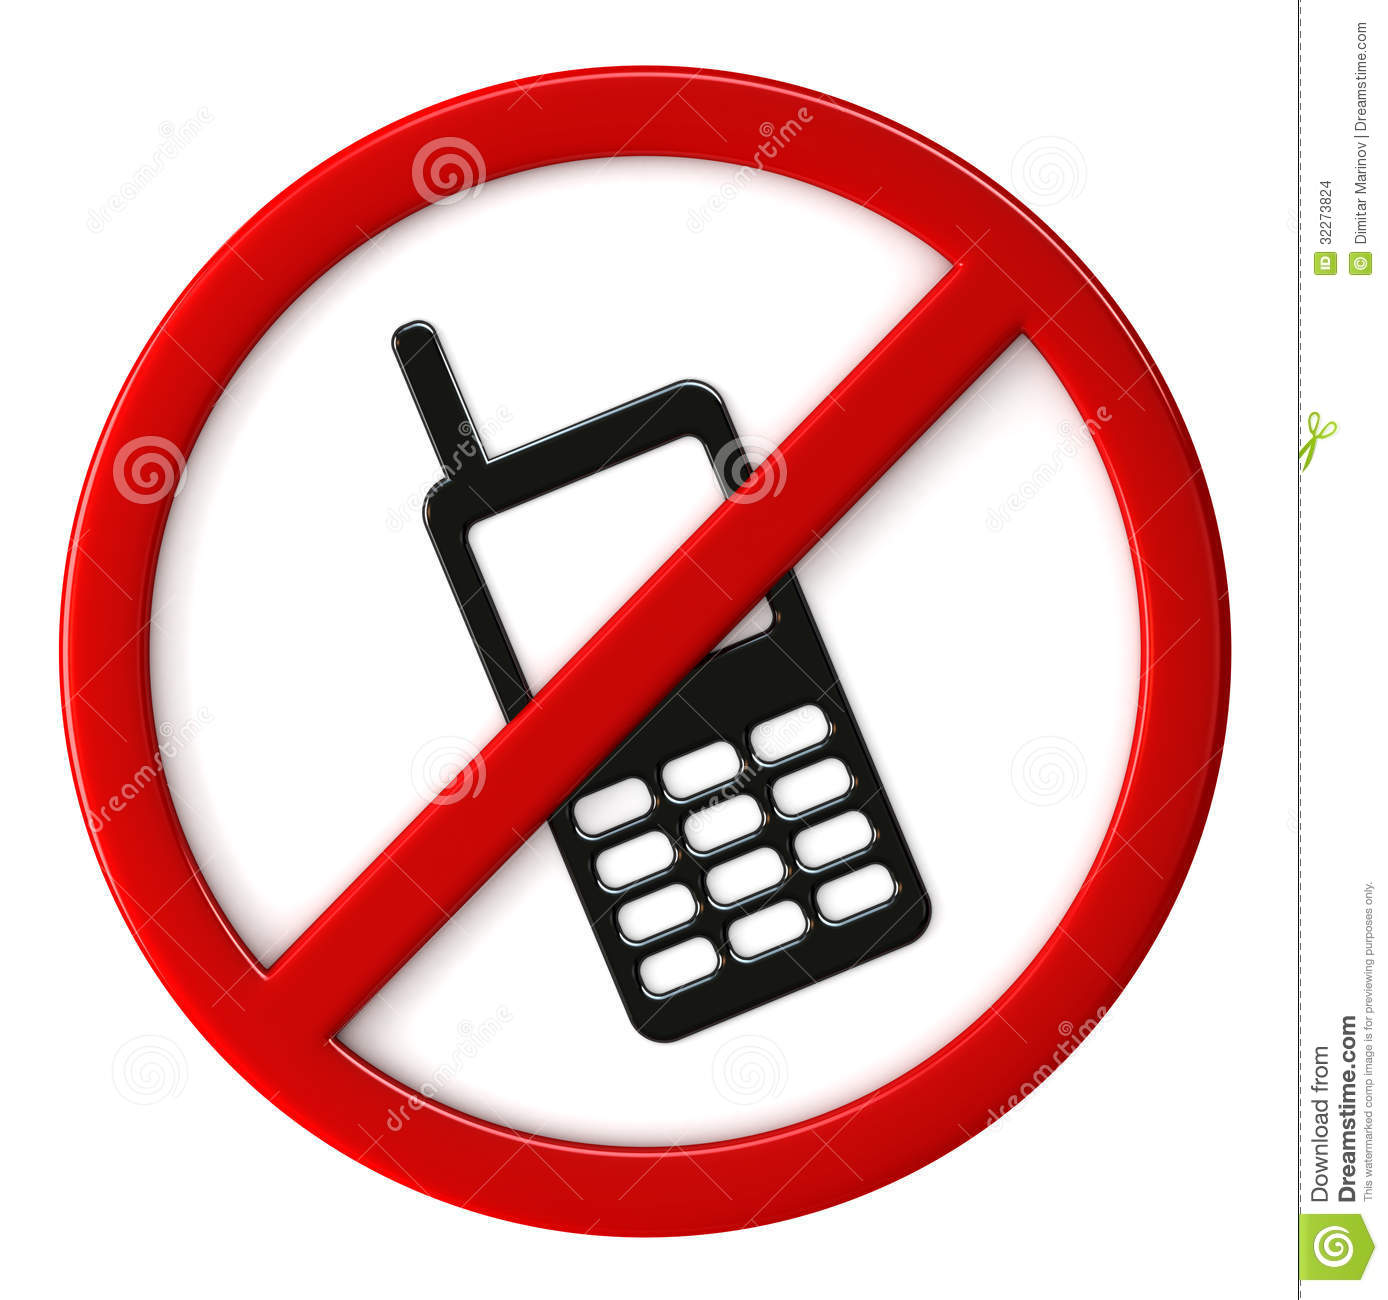 1388x1300 No Cell Phone Clipart